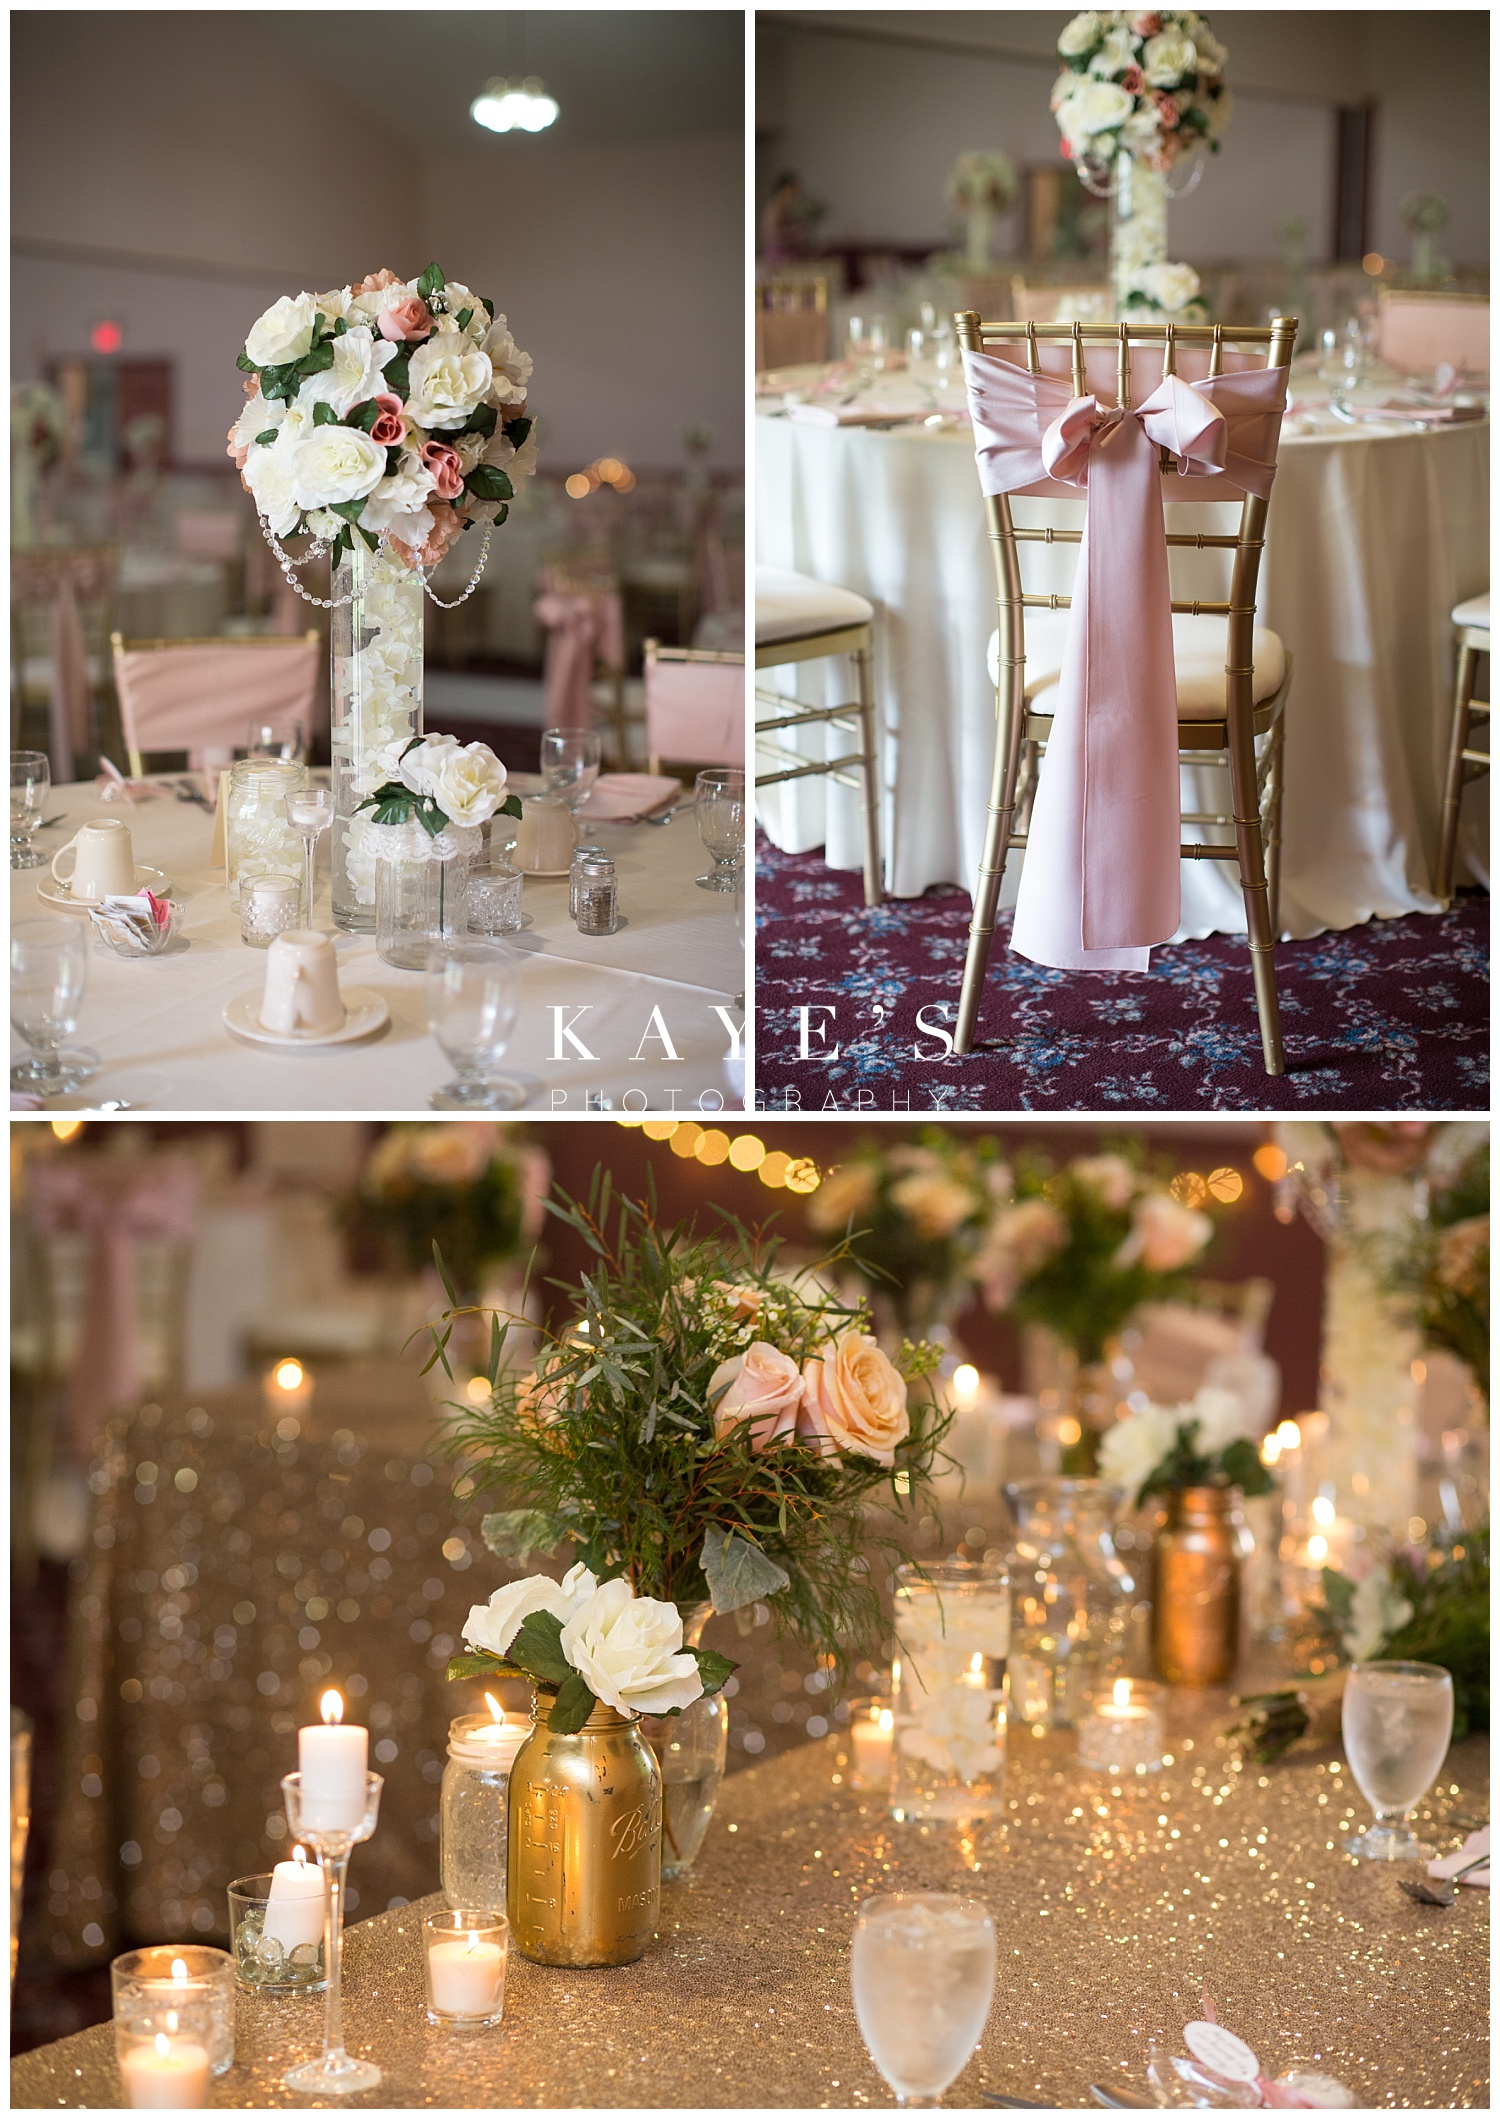 Stunning reception details with tall centerpieces and gold touches everywhere at crossroads village!!